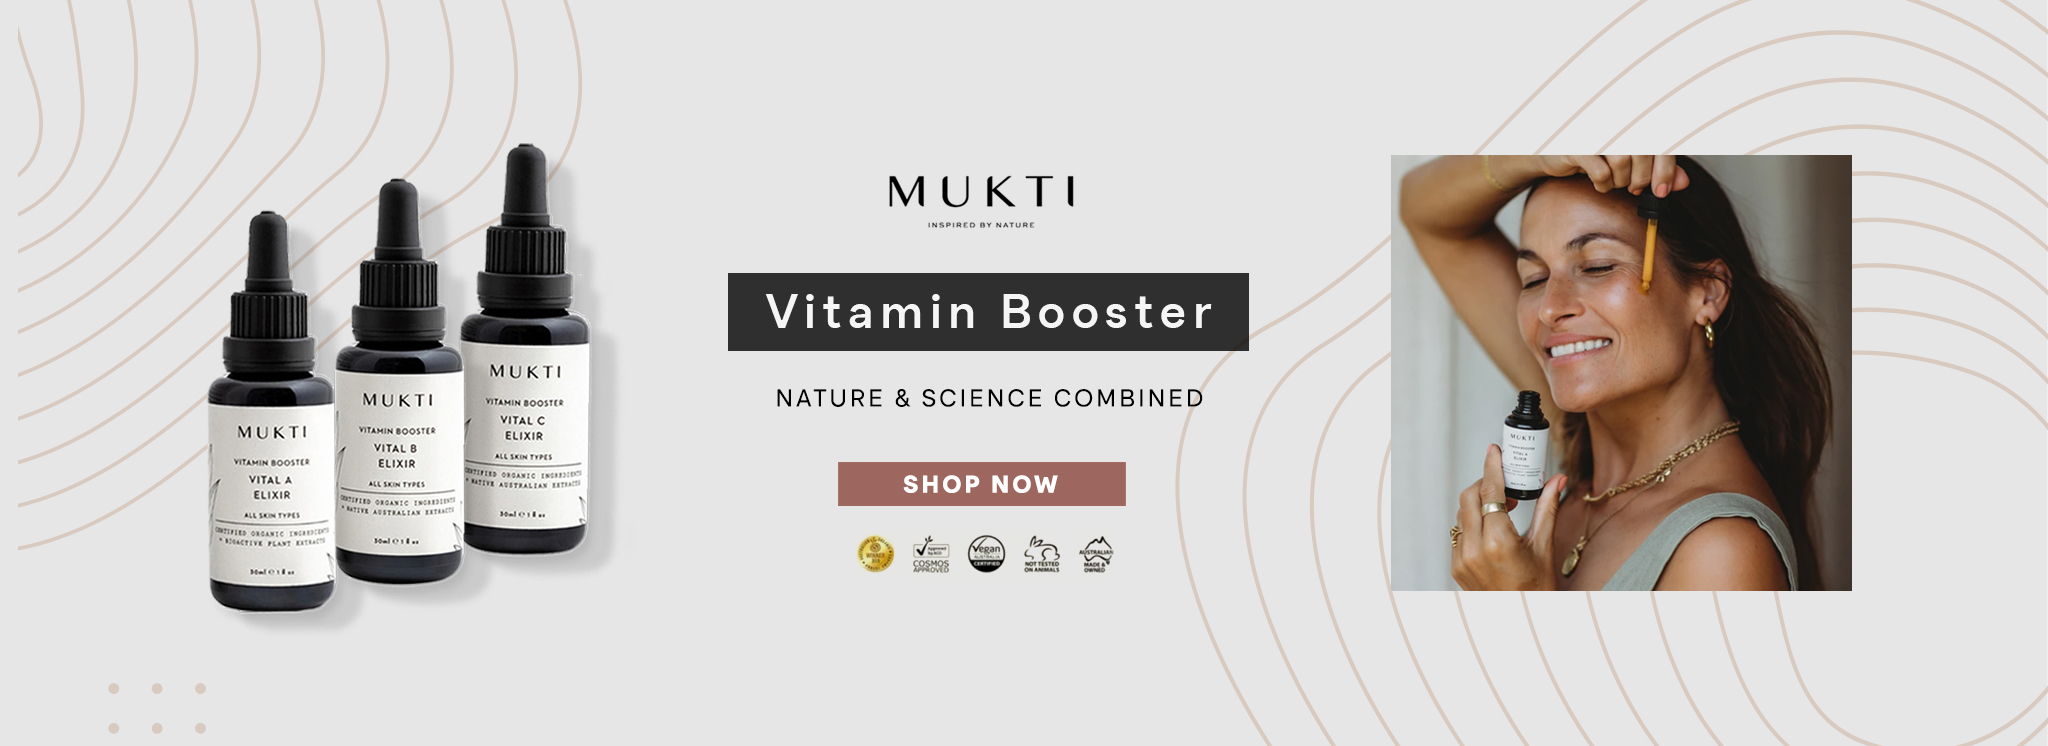 Mukti Vitamin Booster